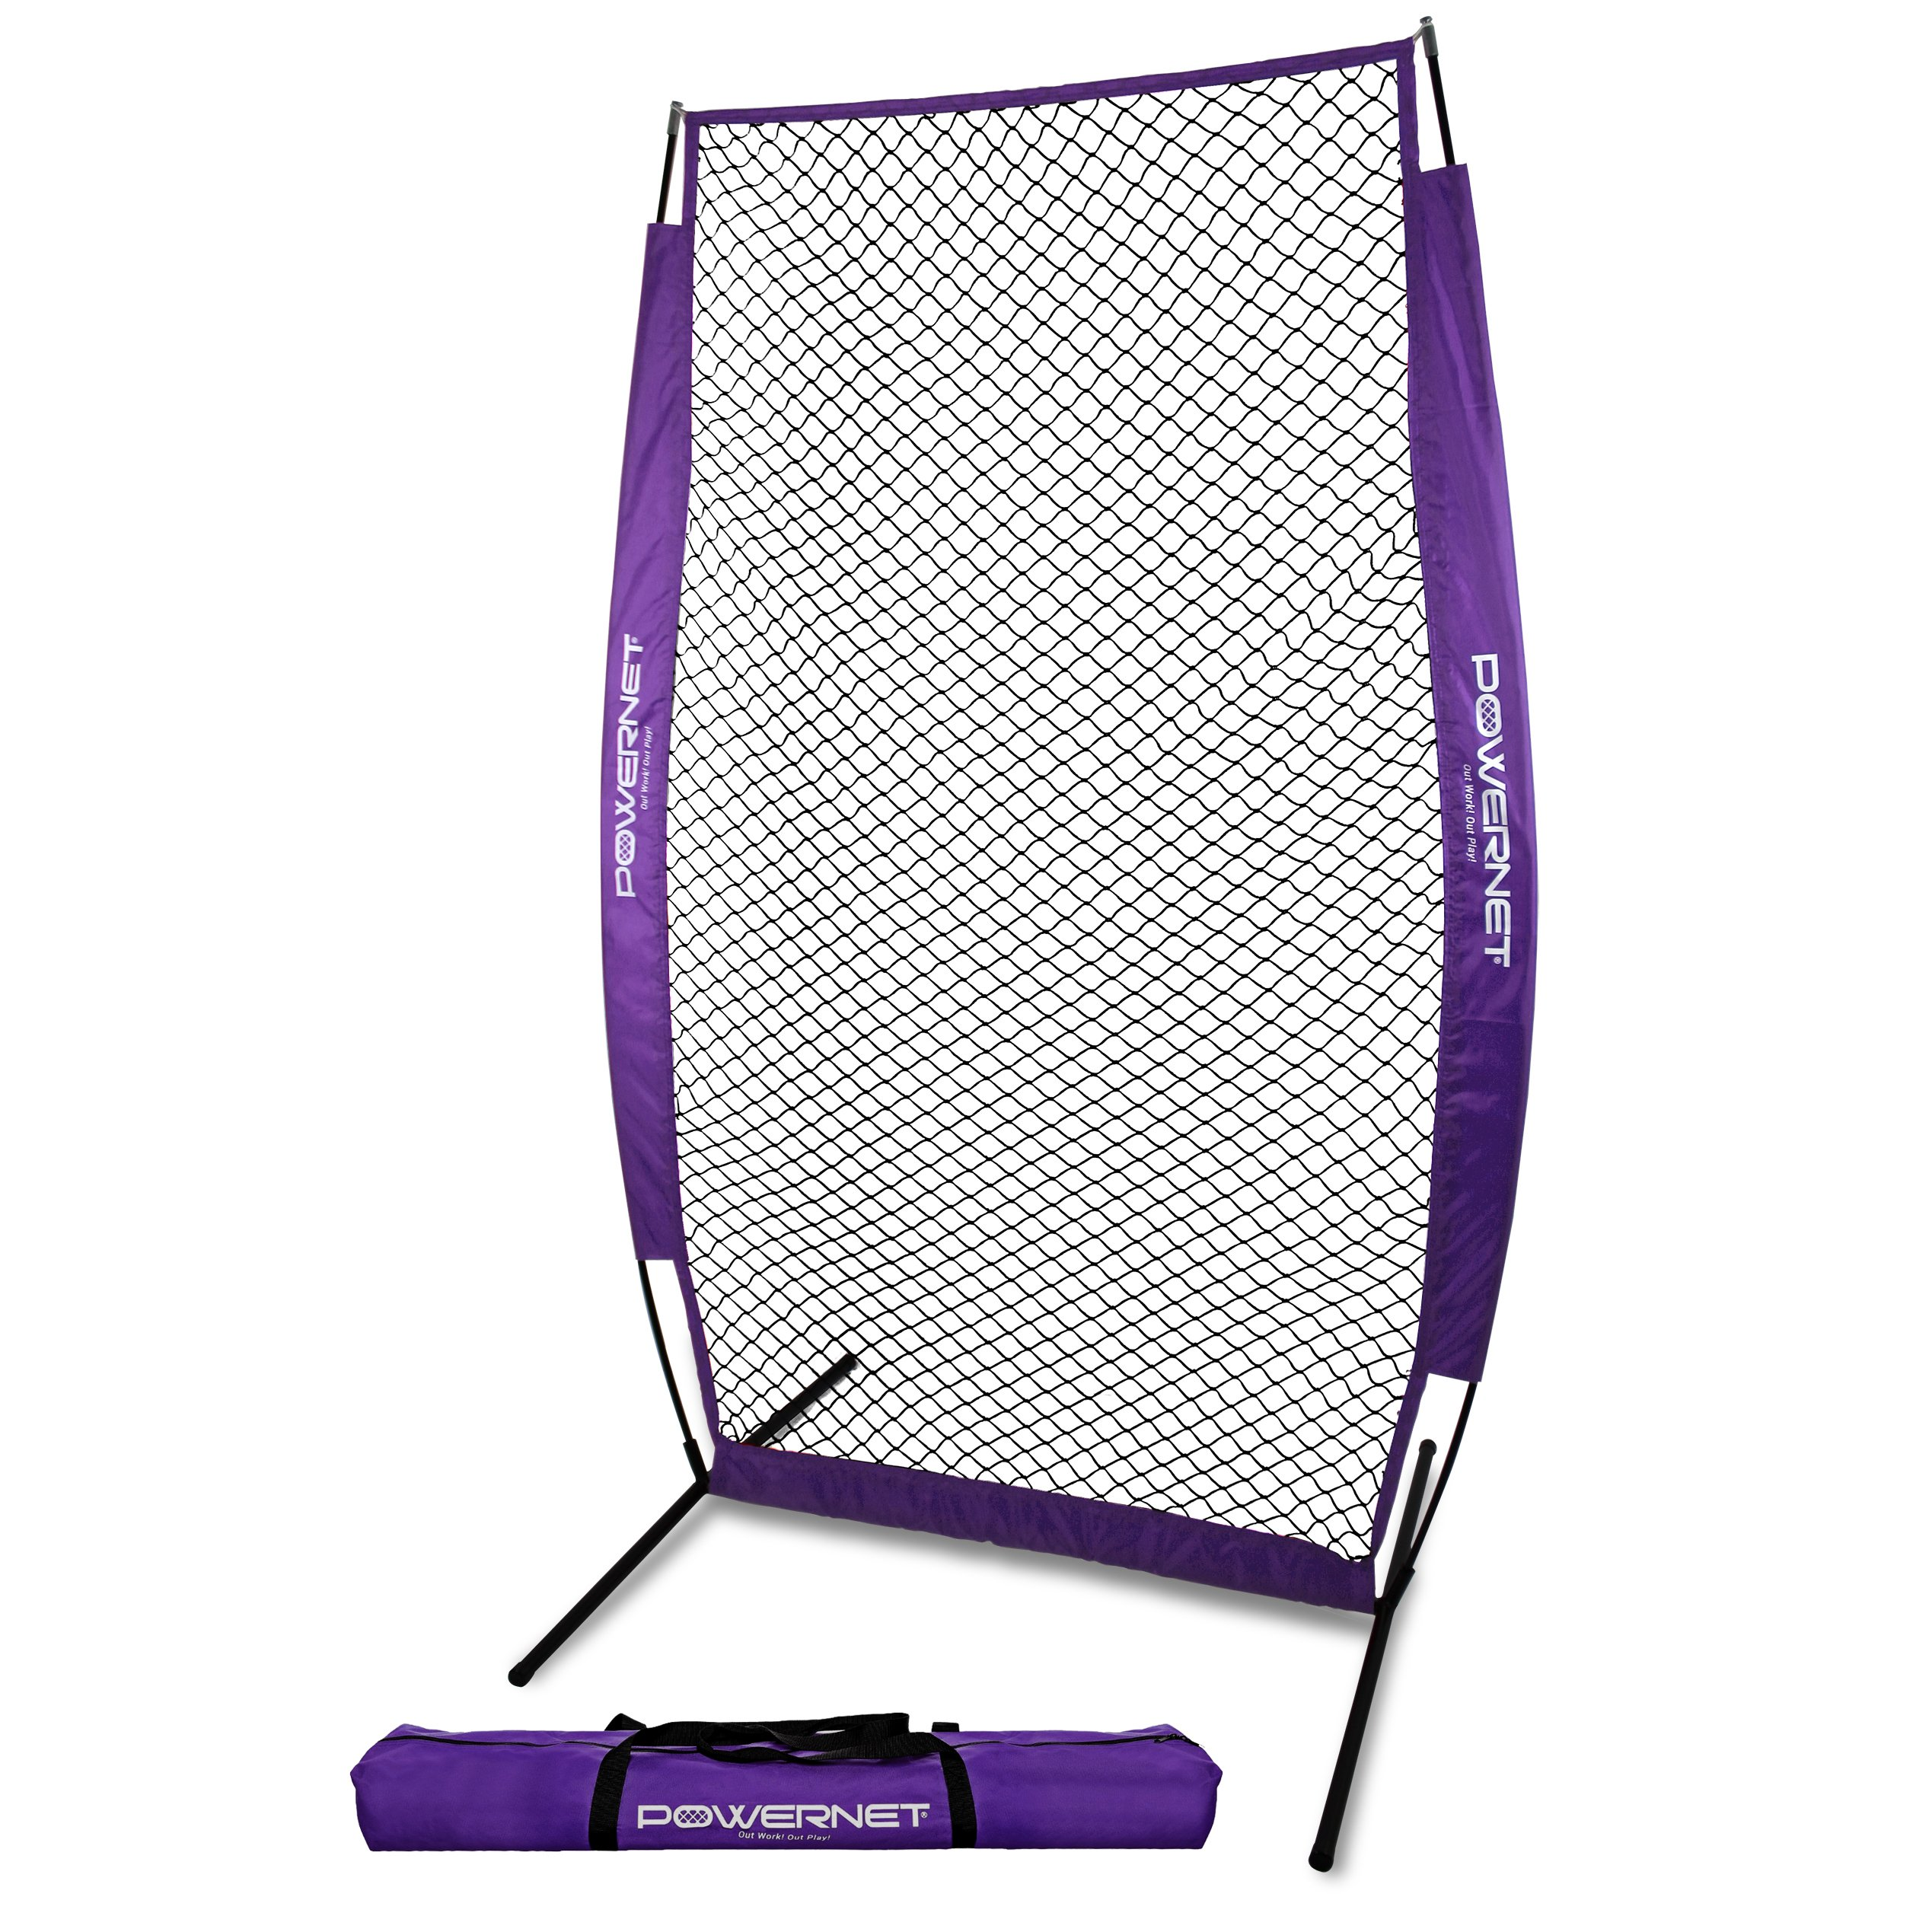 PowerNet I-Screen with Frame and Carry Bag (Purple) | Portable Baseball Pitcher Protection at Batting Practice | Instant Player and Coach Protector from Line Drives Grounders | Heavy Duty Netting